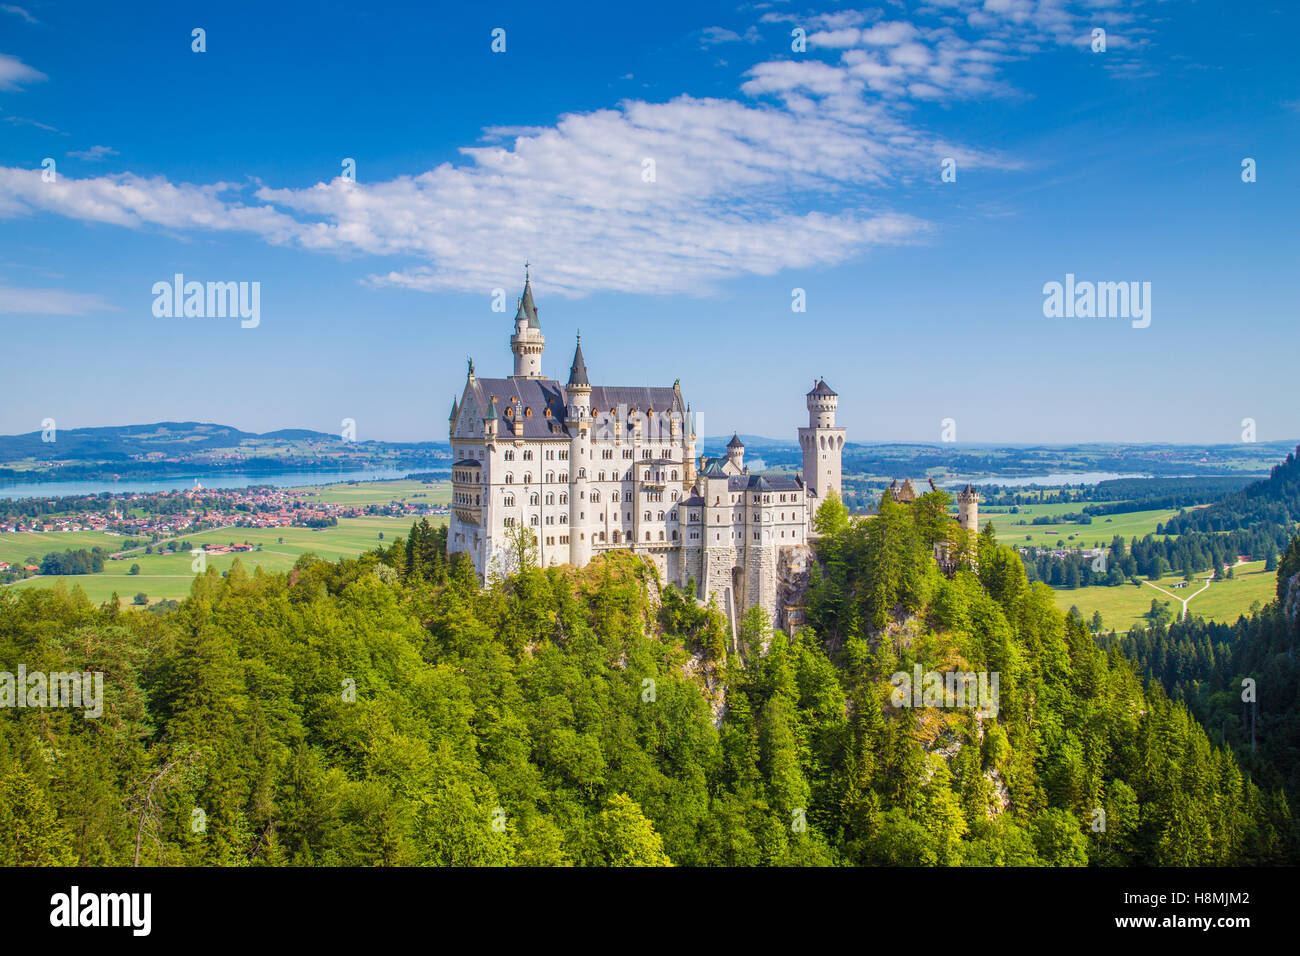 Classic view of world-famous Neuschwanstein Castle, one of Europe's most visited castles, on a beautiful sunny - Stock Image